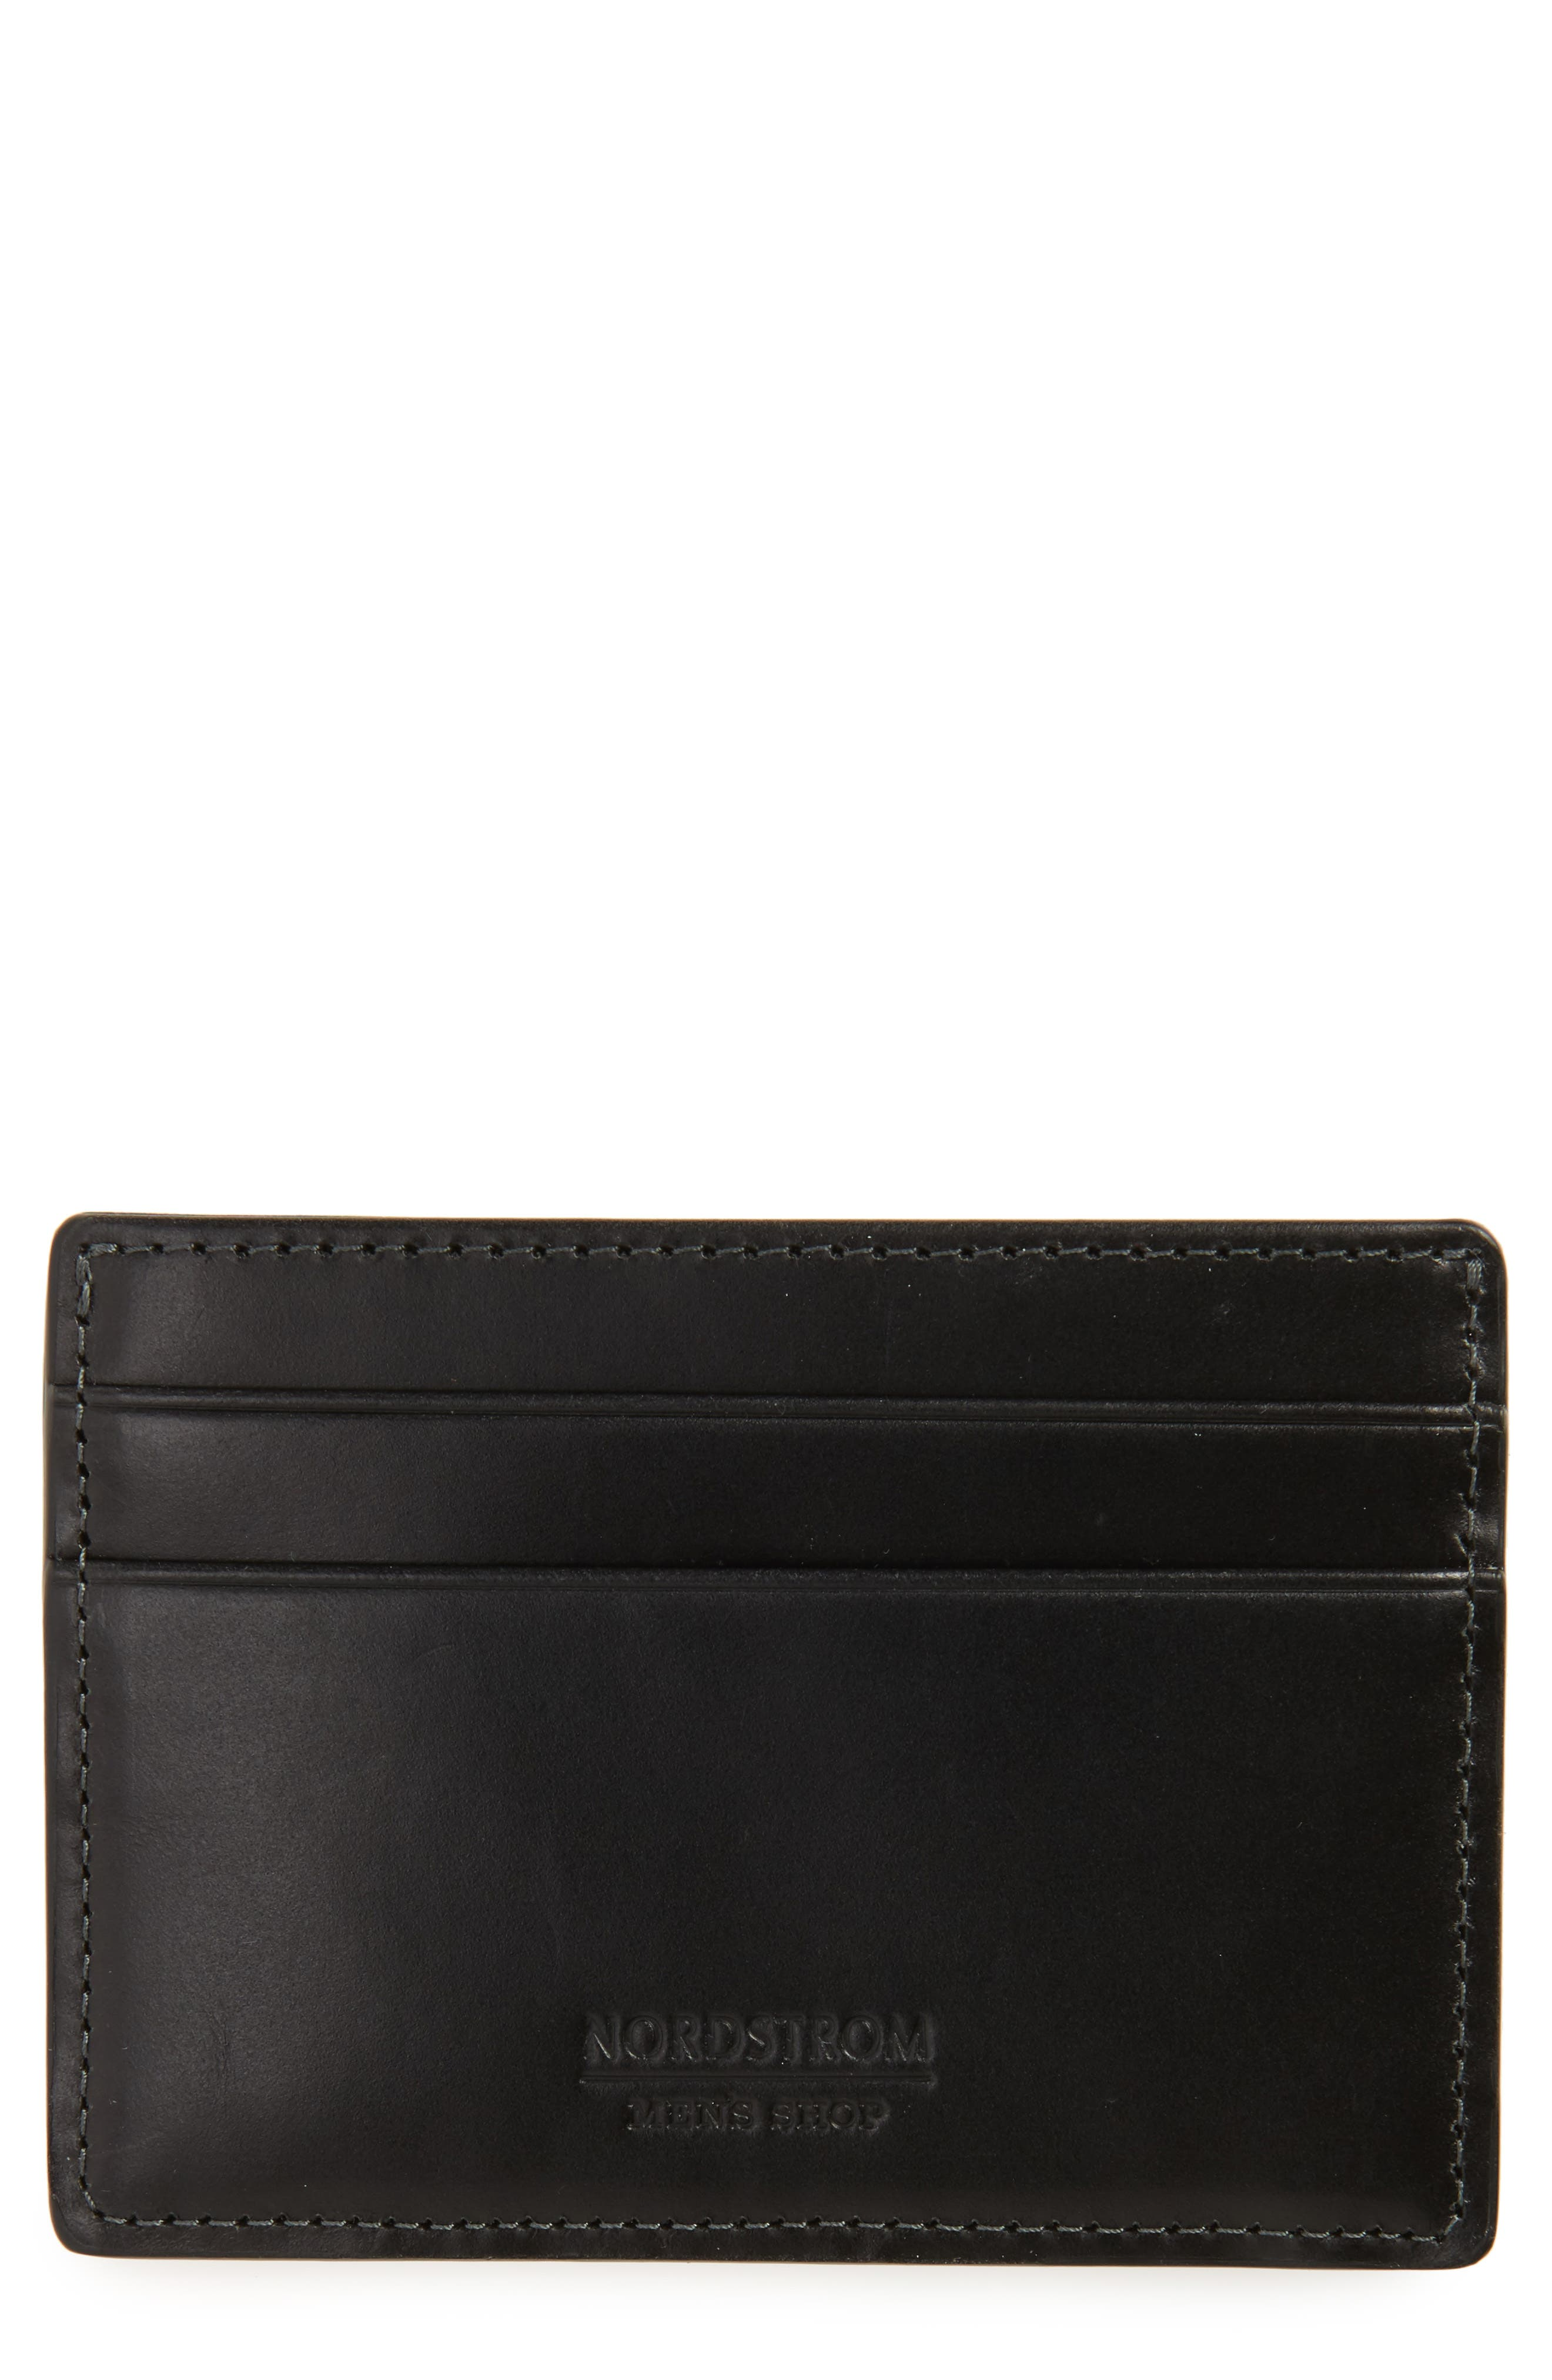 NORDSTROM MENS SHOP Weston Card Case